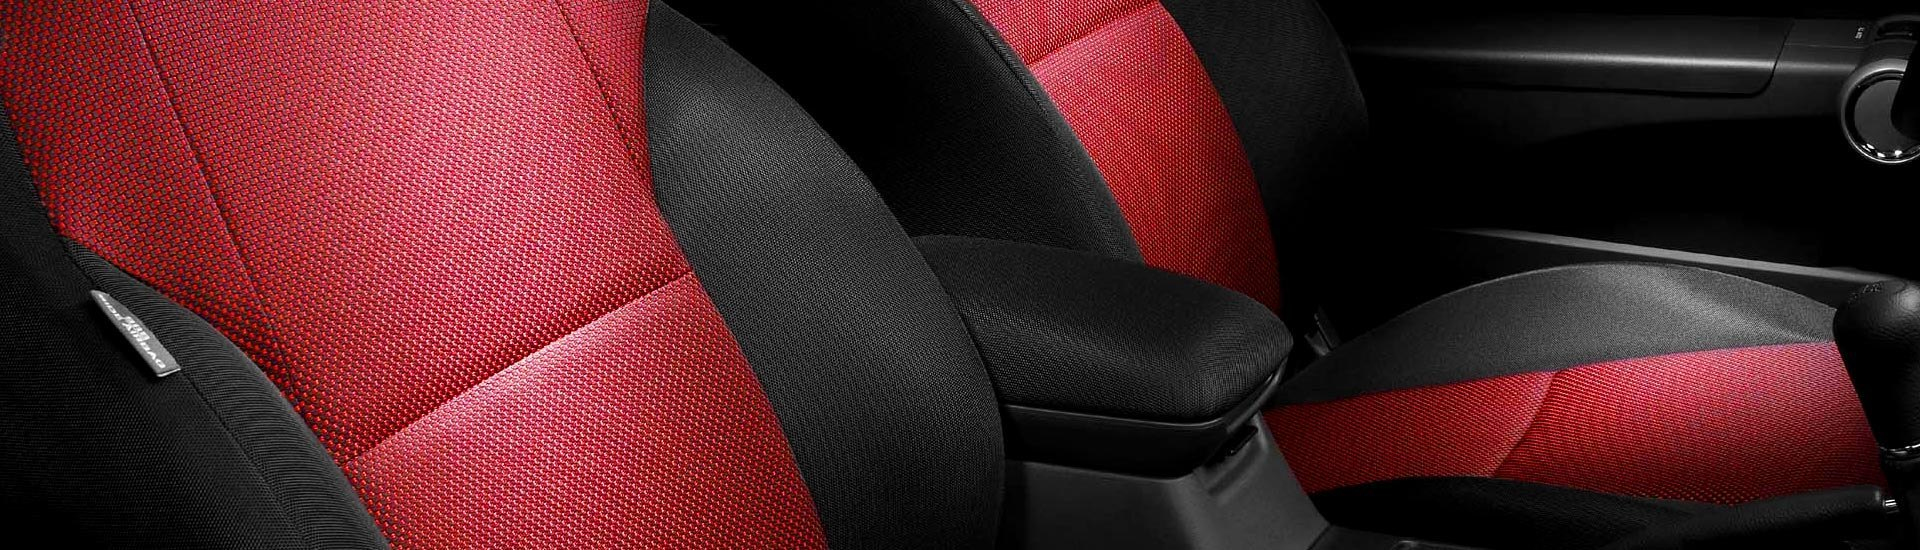 BLACK PIPING CLASSIC MINI REAR SEAT COVER BLACK